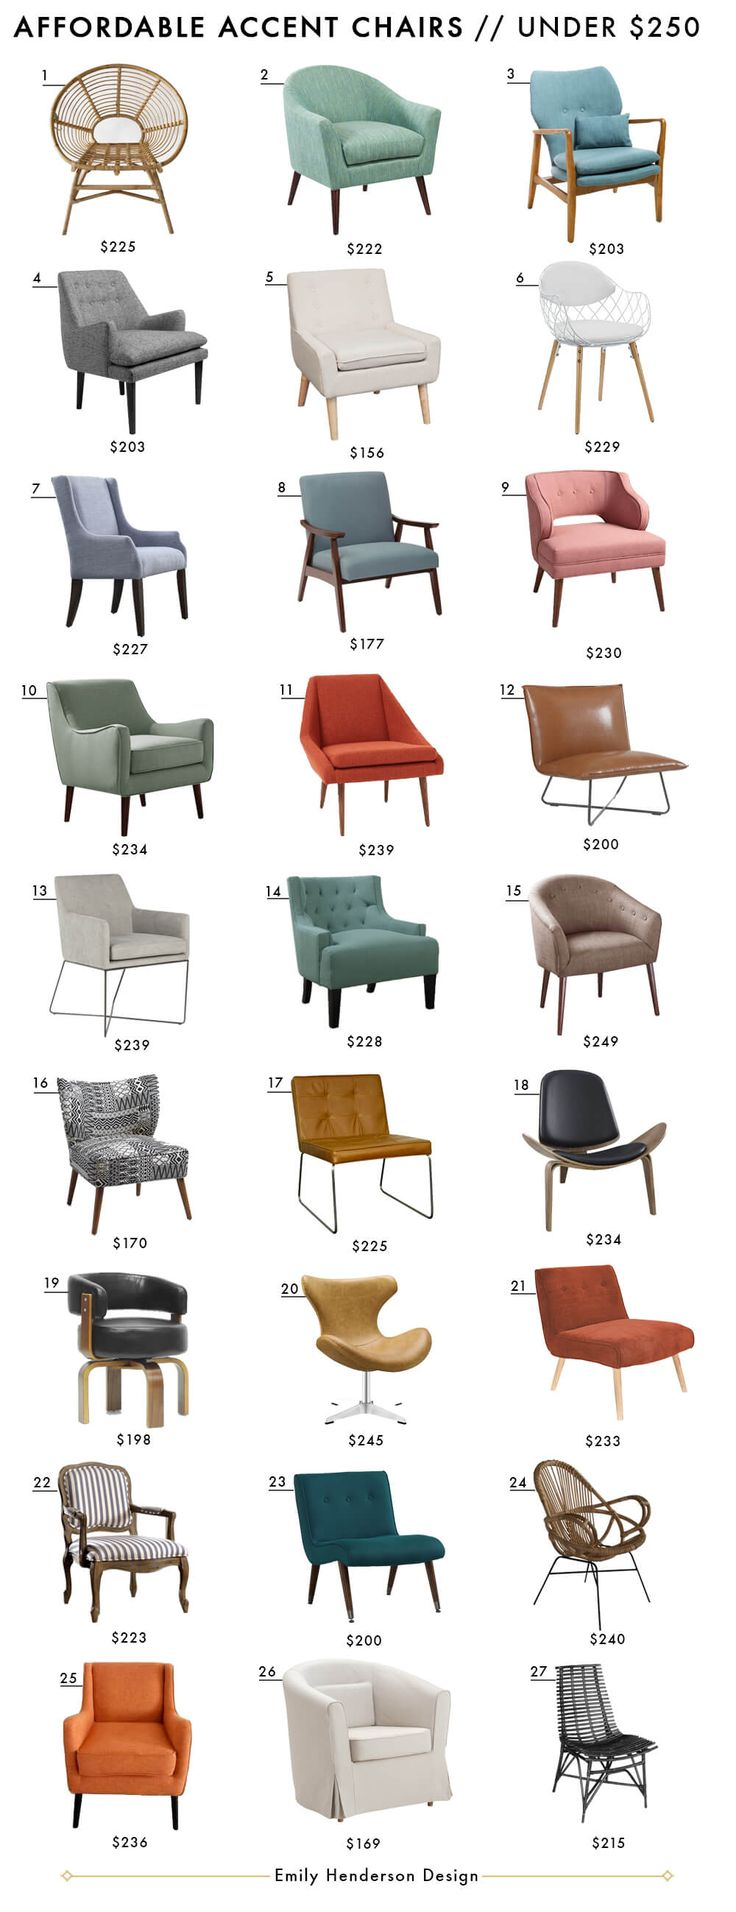 Affordable Accent Chairs Under $250